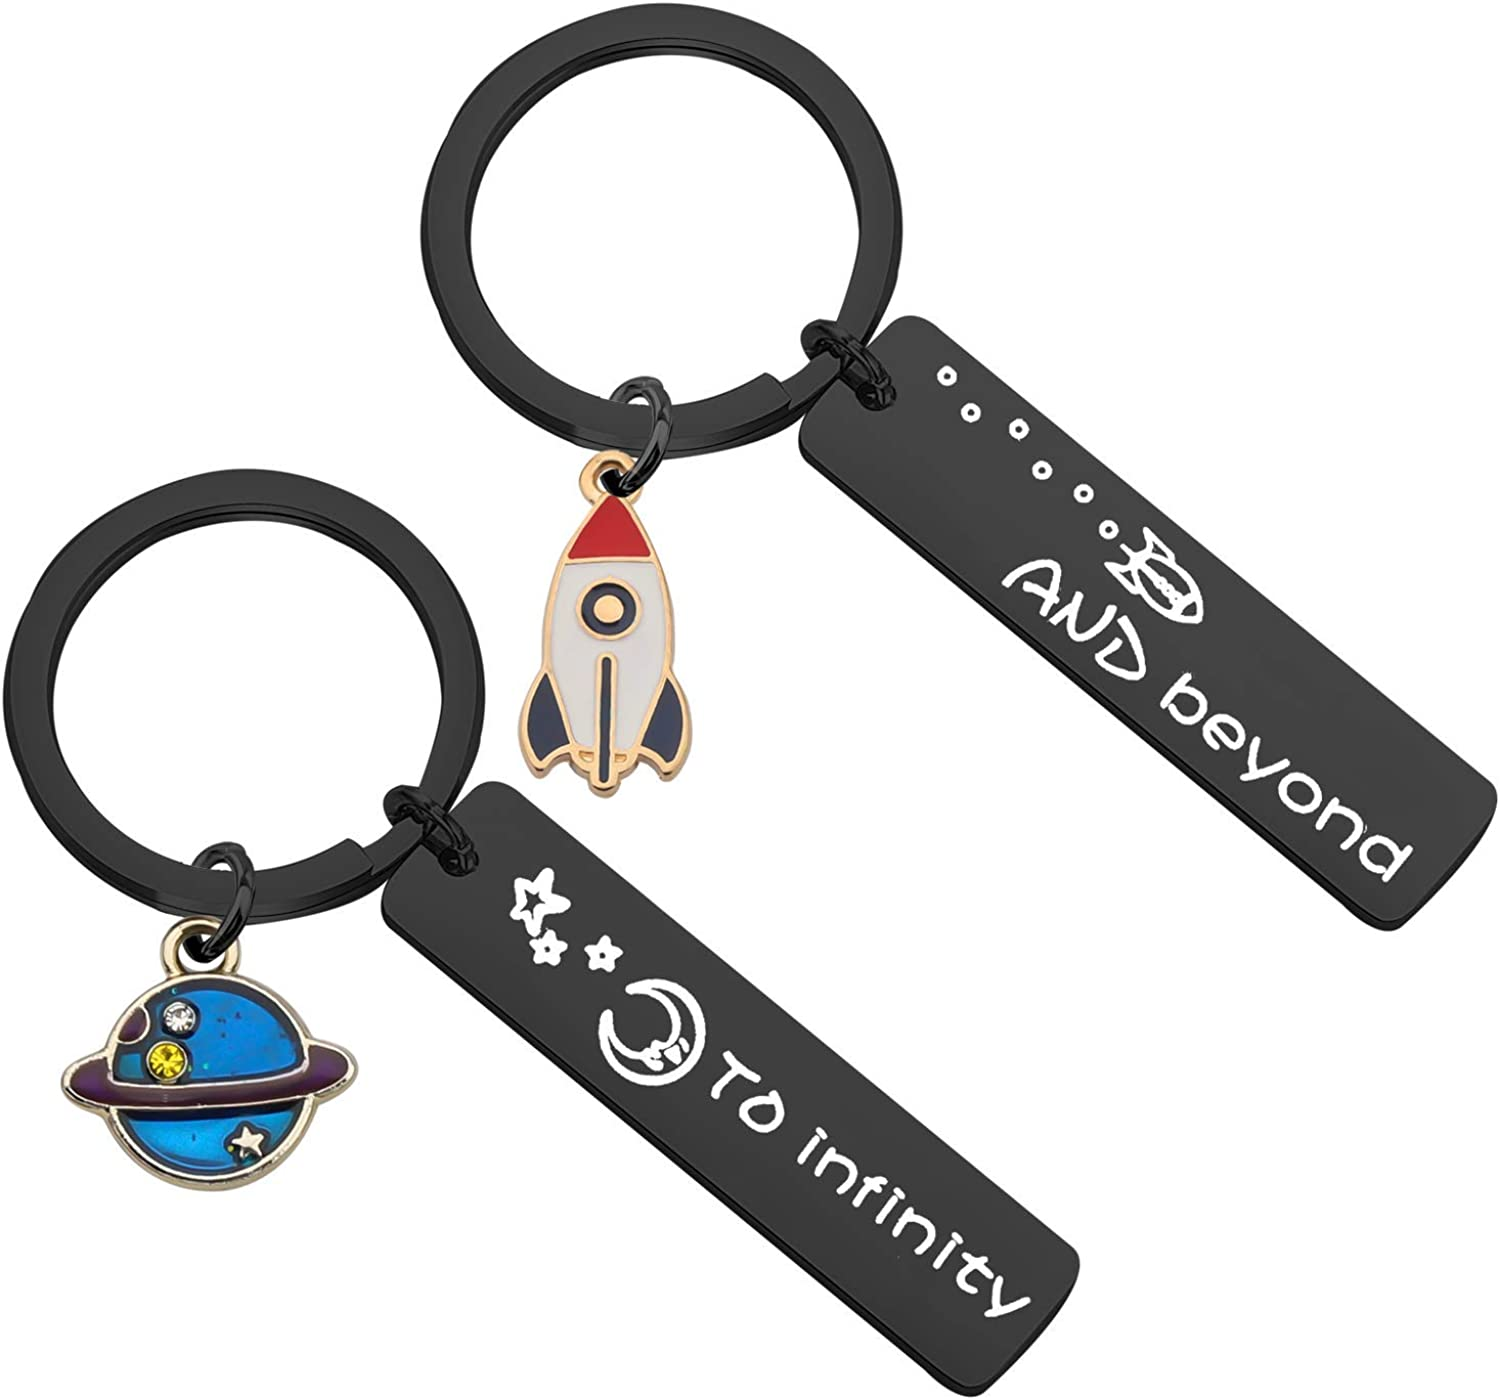 MAOFAED High quality San Francisco Mall Couples Keychain I Love You Boyfr Beyond to and Infinity